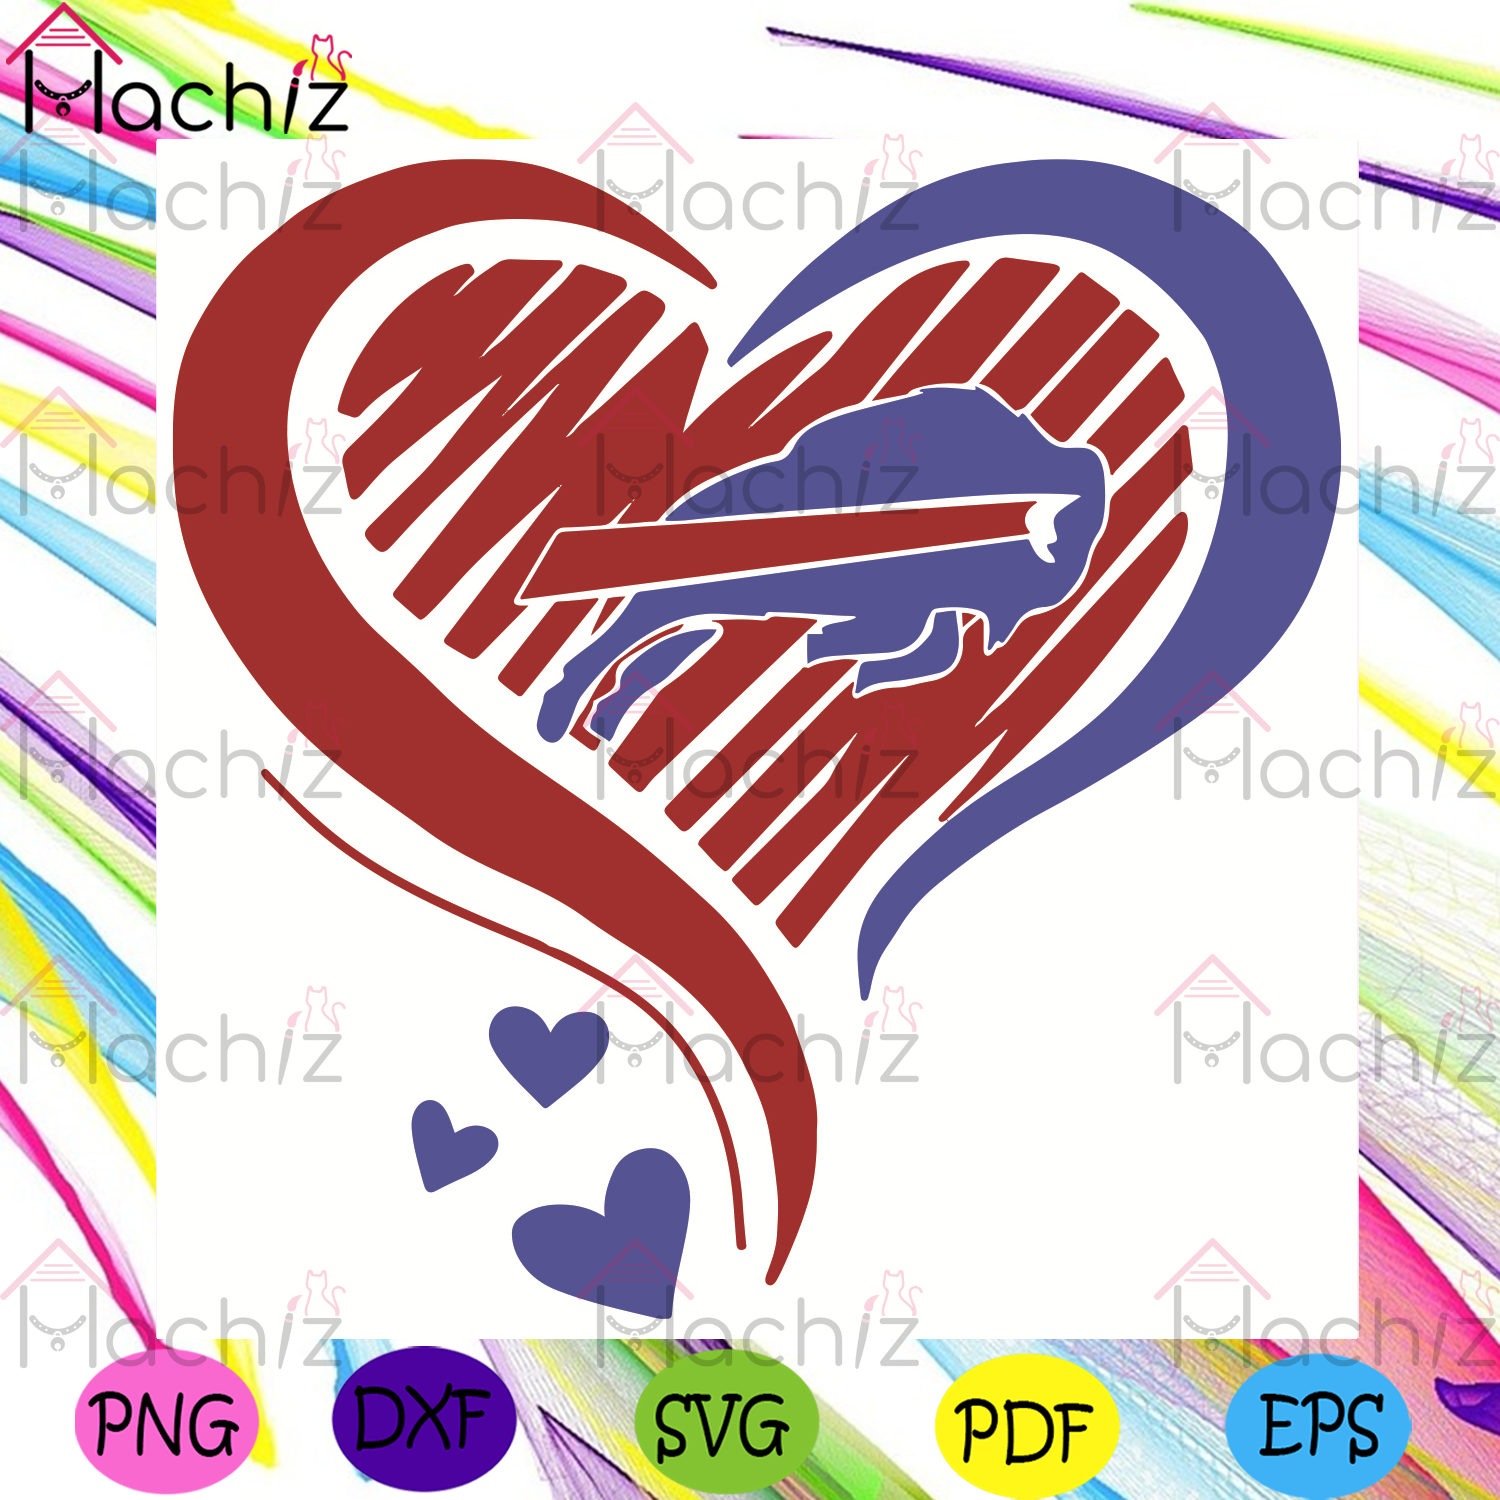 Autism Buffalo Bills Svg, Sport Svg, Autism Svg, Buffalo Bills Football Team Svg, Autism Awareness Svg, Autism Love Svg, Autism Logo Svg, Buffalo Bills Svg, Buffalo Bills Fans Svg, Buffalo Bills Gifts Svg, Buffalo Bills Logo Svg, Football Svg,